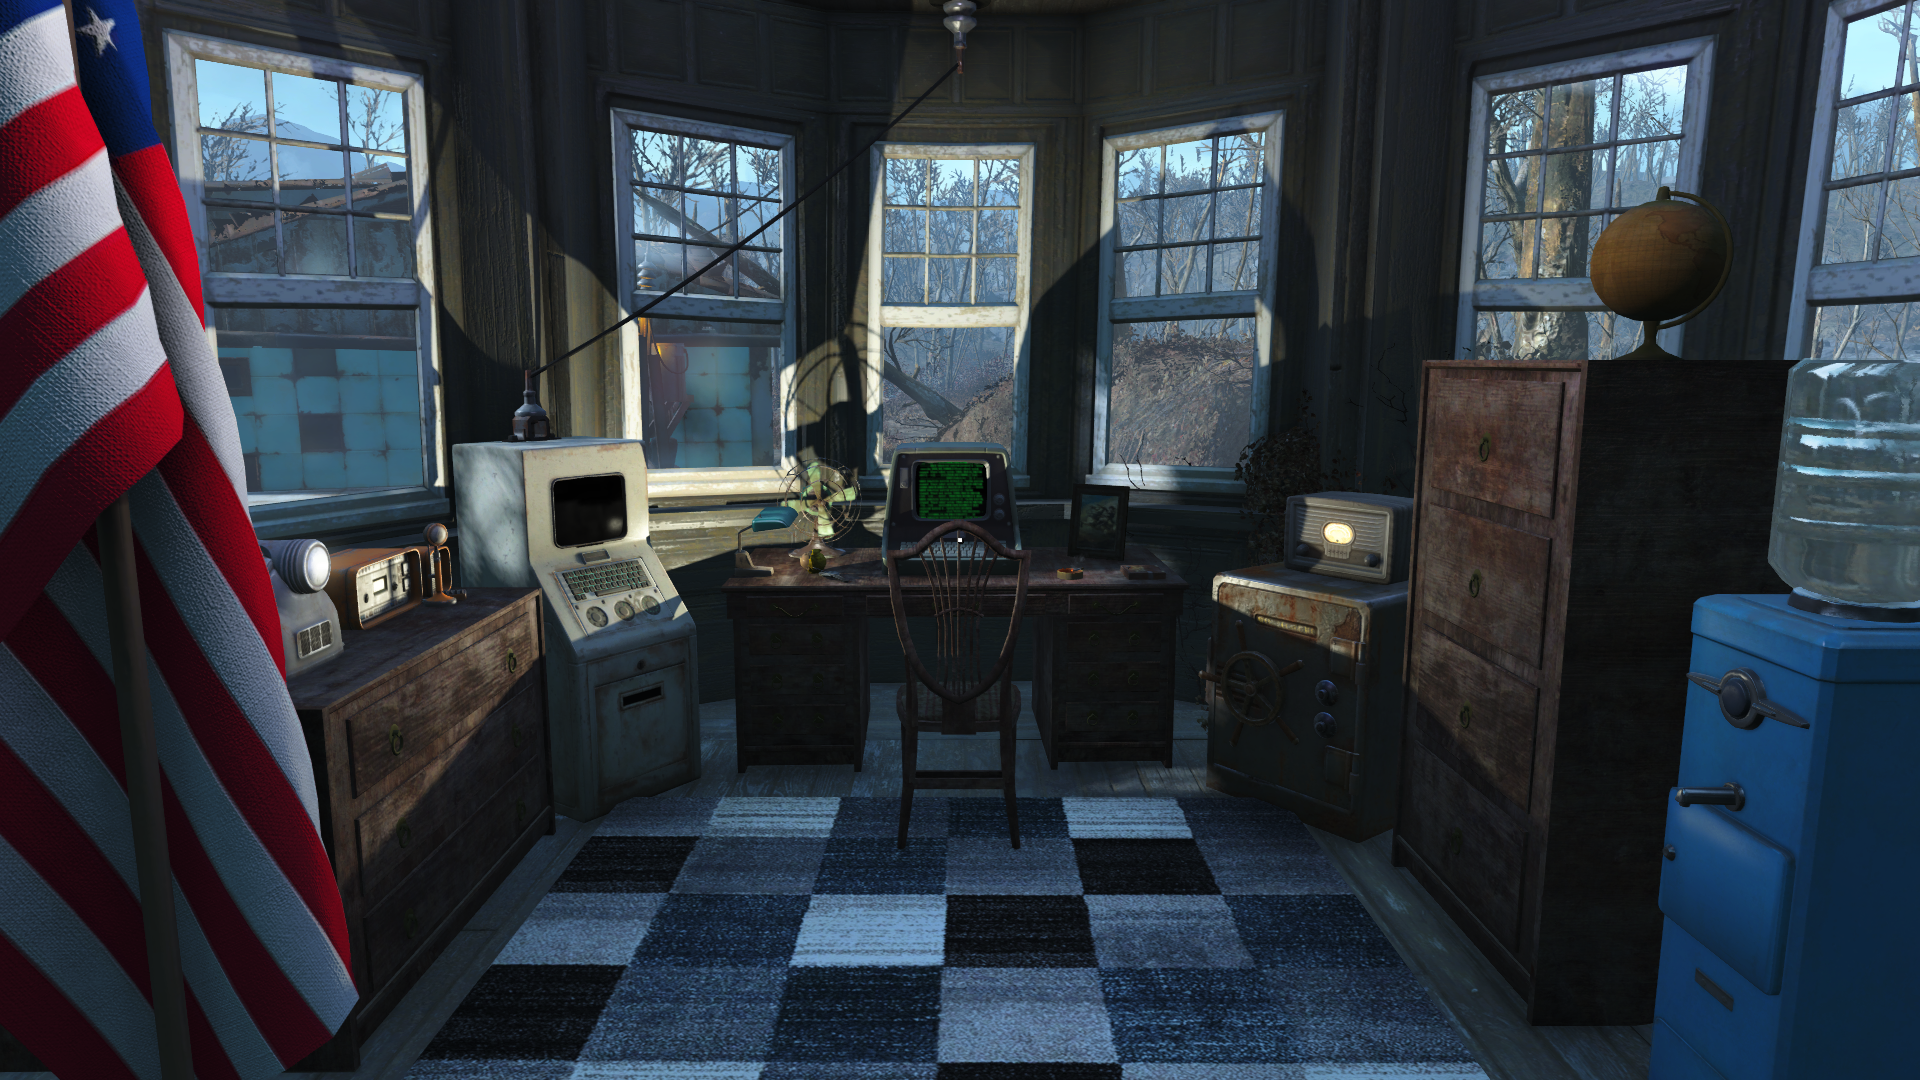 Desk Lamps Of The Commonwealth Dlc At Fallout 4 Nexus